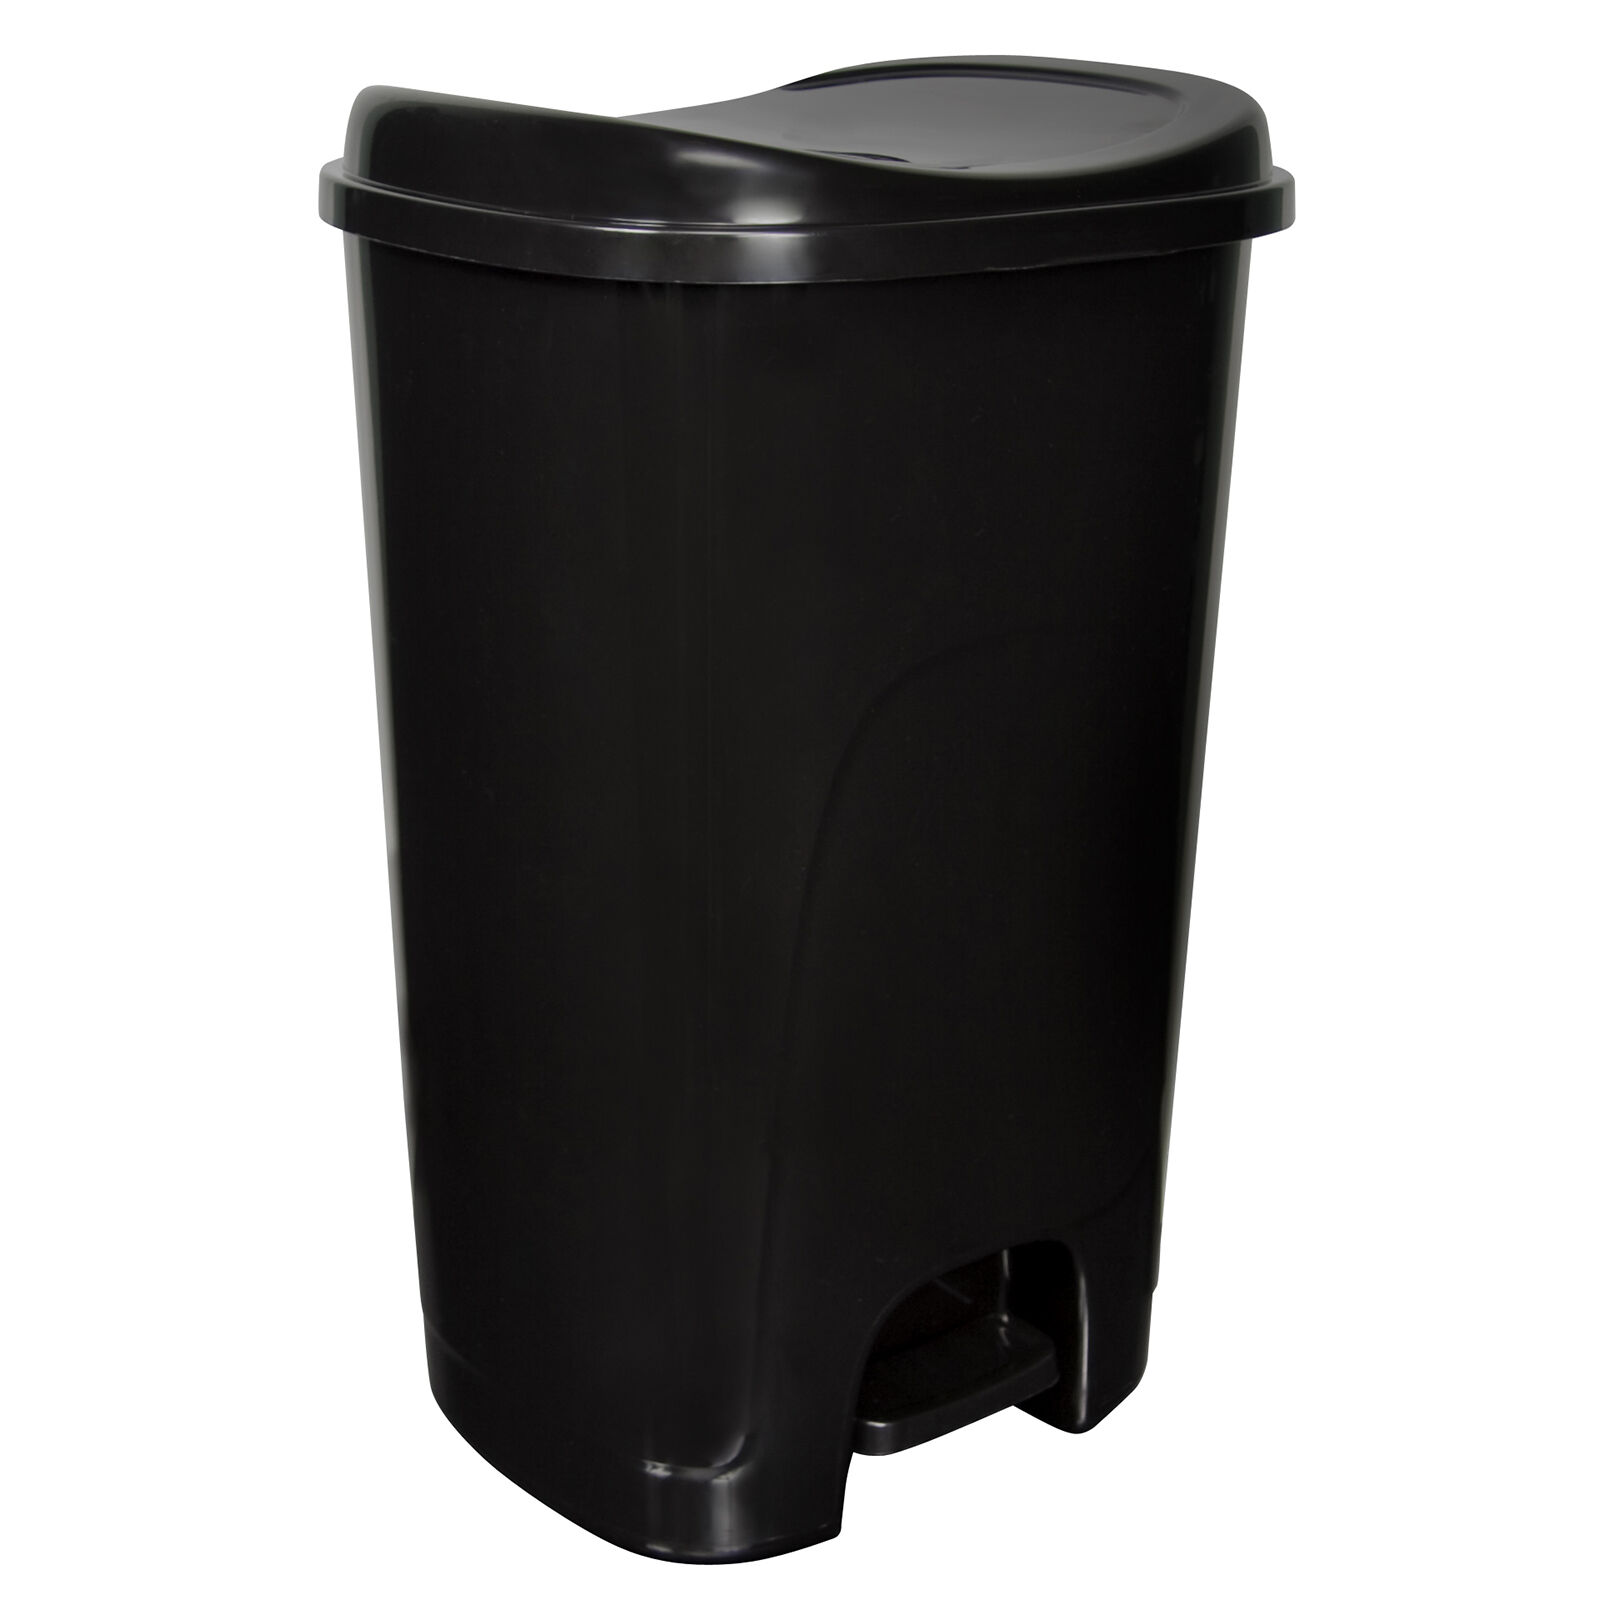 Hefty 13 Gallon Step- Trash - Black Home